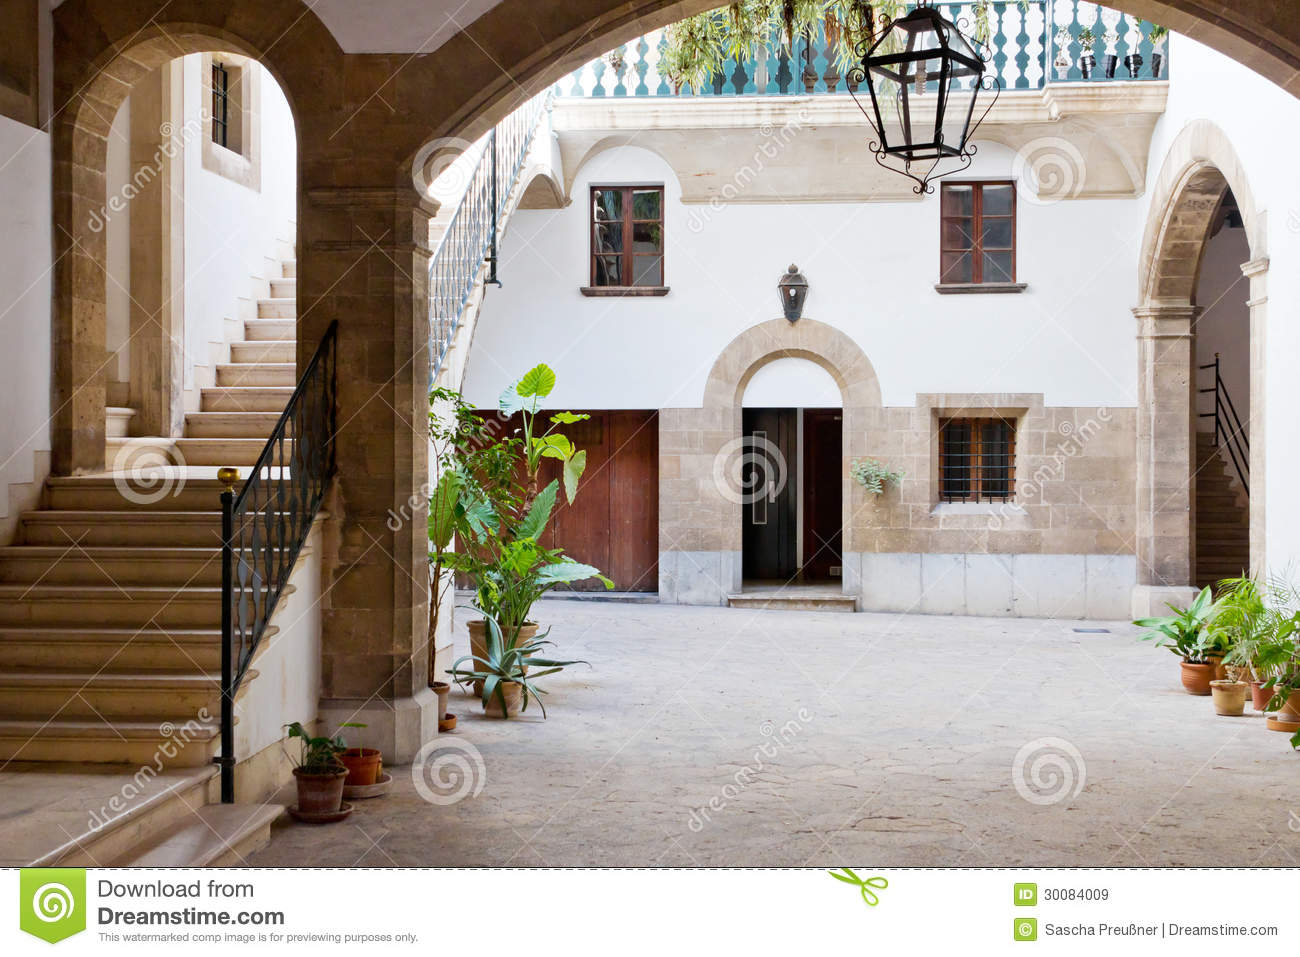 Spanish interior courtyard royalty free stock images for Spanish style house plans with interior courtyard